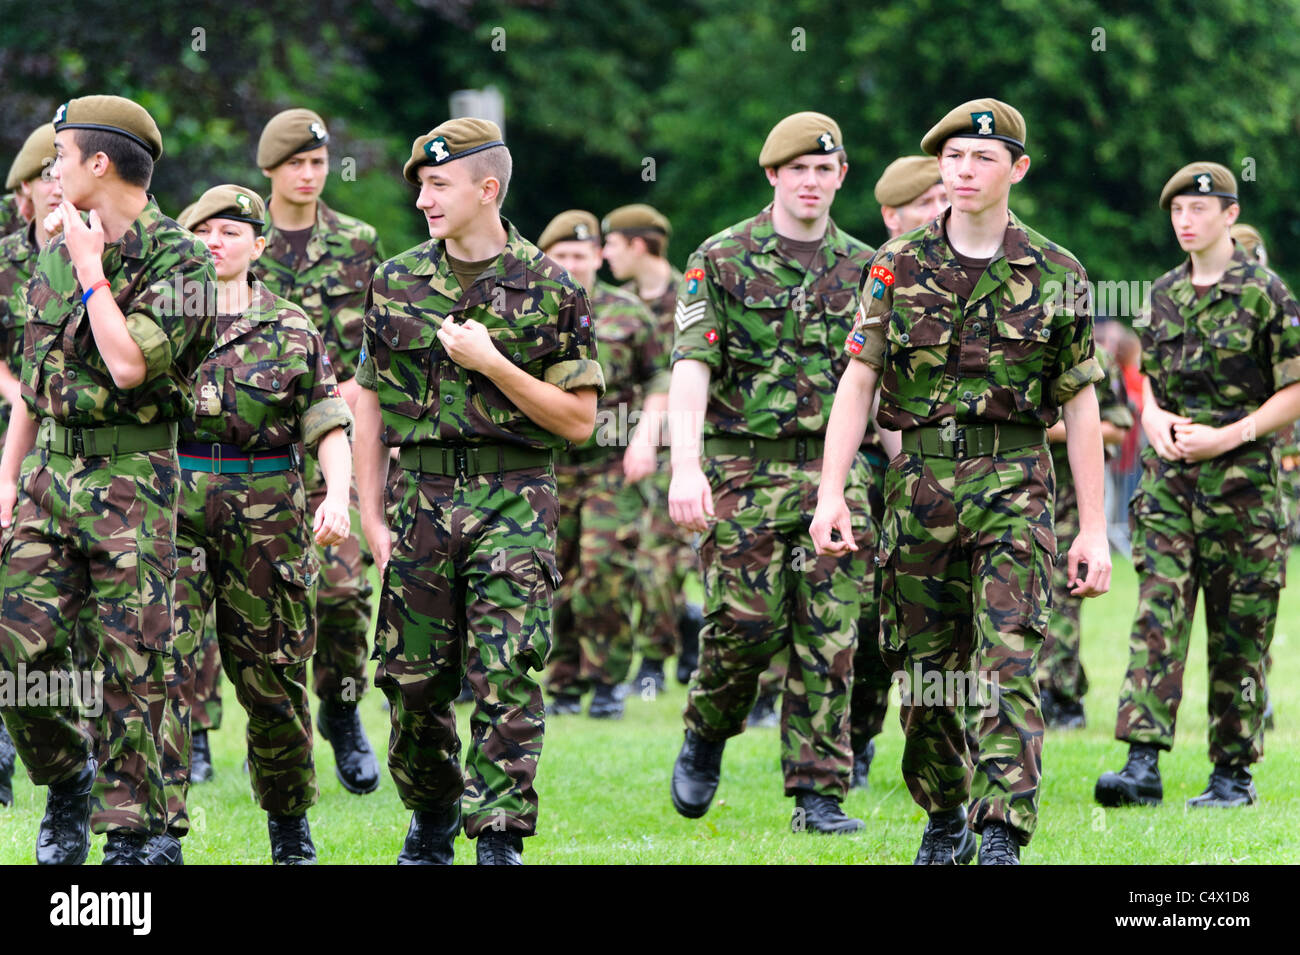 ACF Army Cadet Force boys & girls, Armed Forces Day, Bute Park, Cardiff, Wales, UK. - Stock Image